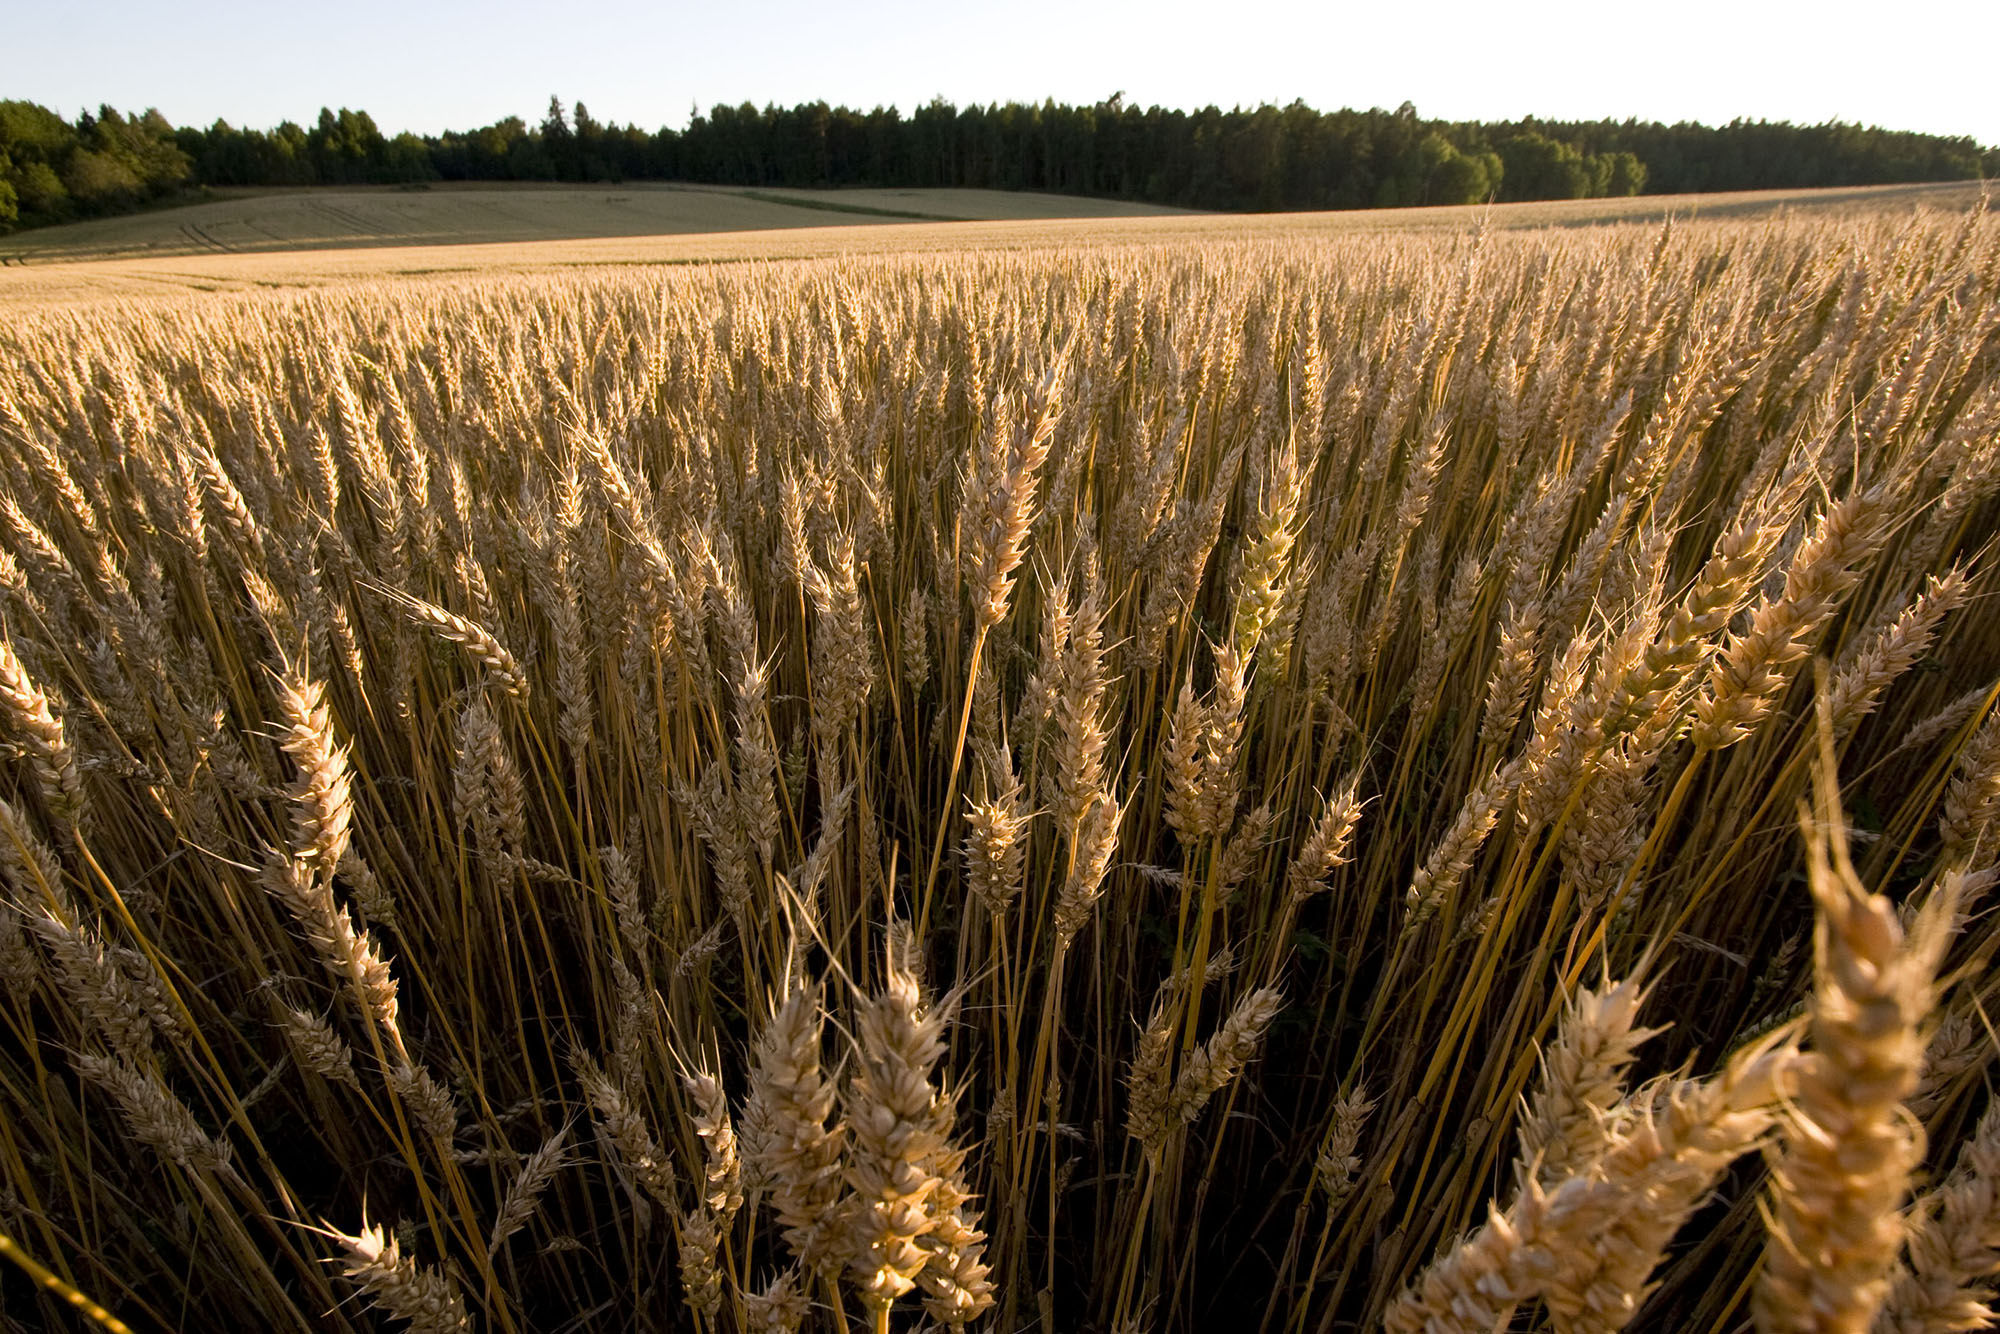 Monoculture. Wheat growing in Sweden. Copyright: Nic Kruys/Azote.